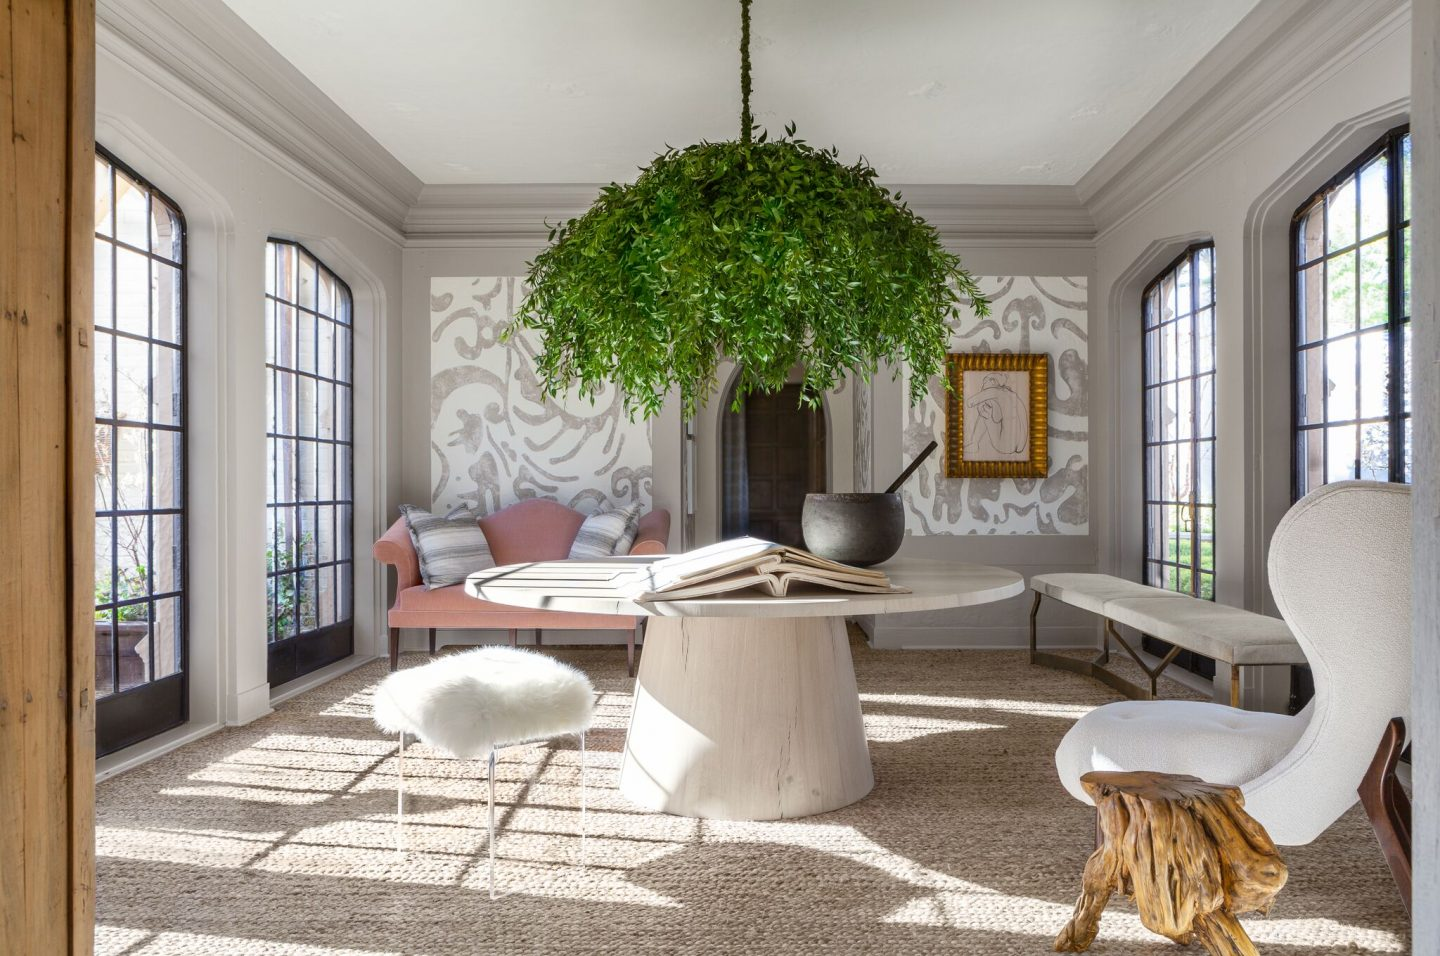 Refined, rustic, sophisticated, and serene - the unique interior design in this Chicago home by Michael Del Piero resonates with sophistication and calm. #interiordesign #michaeldelpiero #rusticluxe #roughluxe #modernrustic #luxurydecor #chicagohome